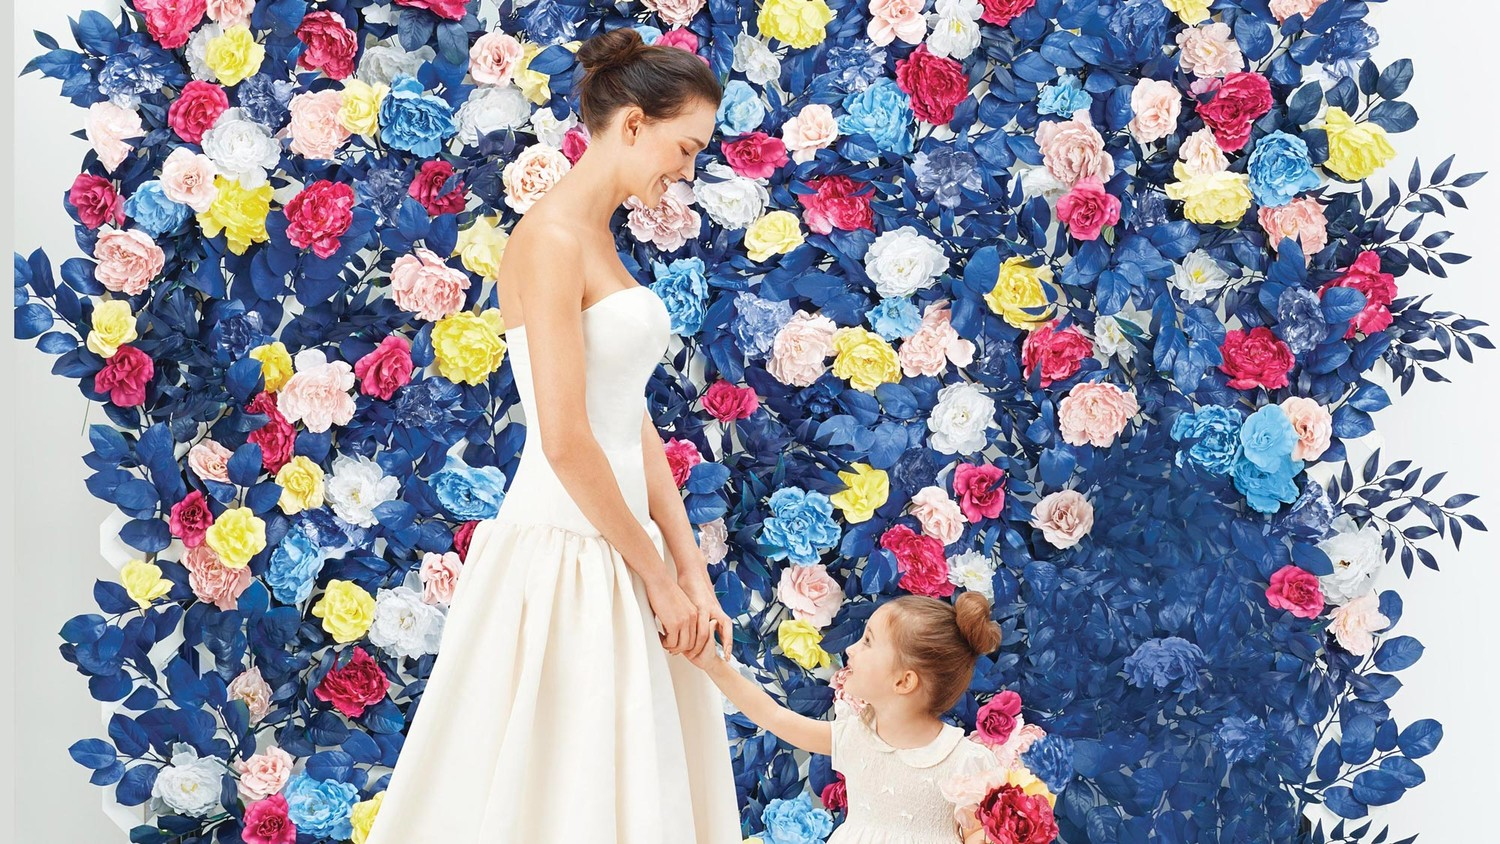 Flower Wall How To Create A Faux Flower Wall For Your Wedding Martha Stewart